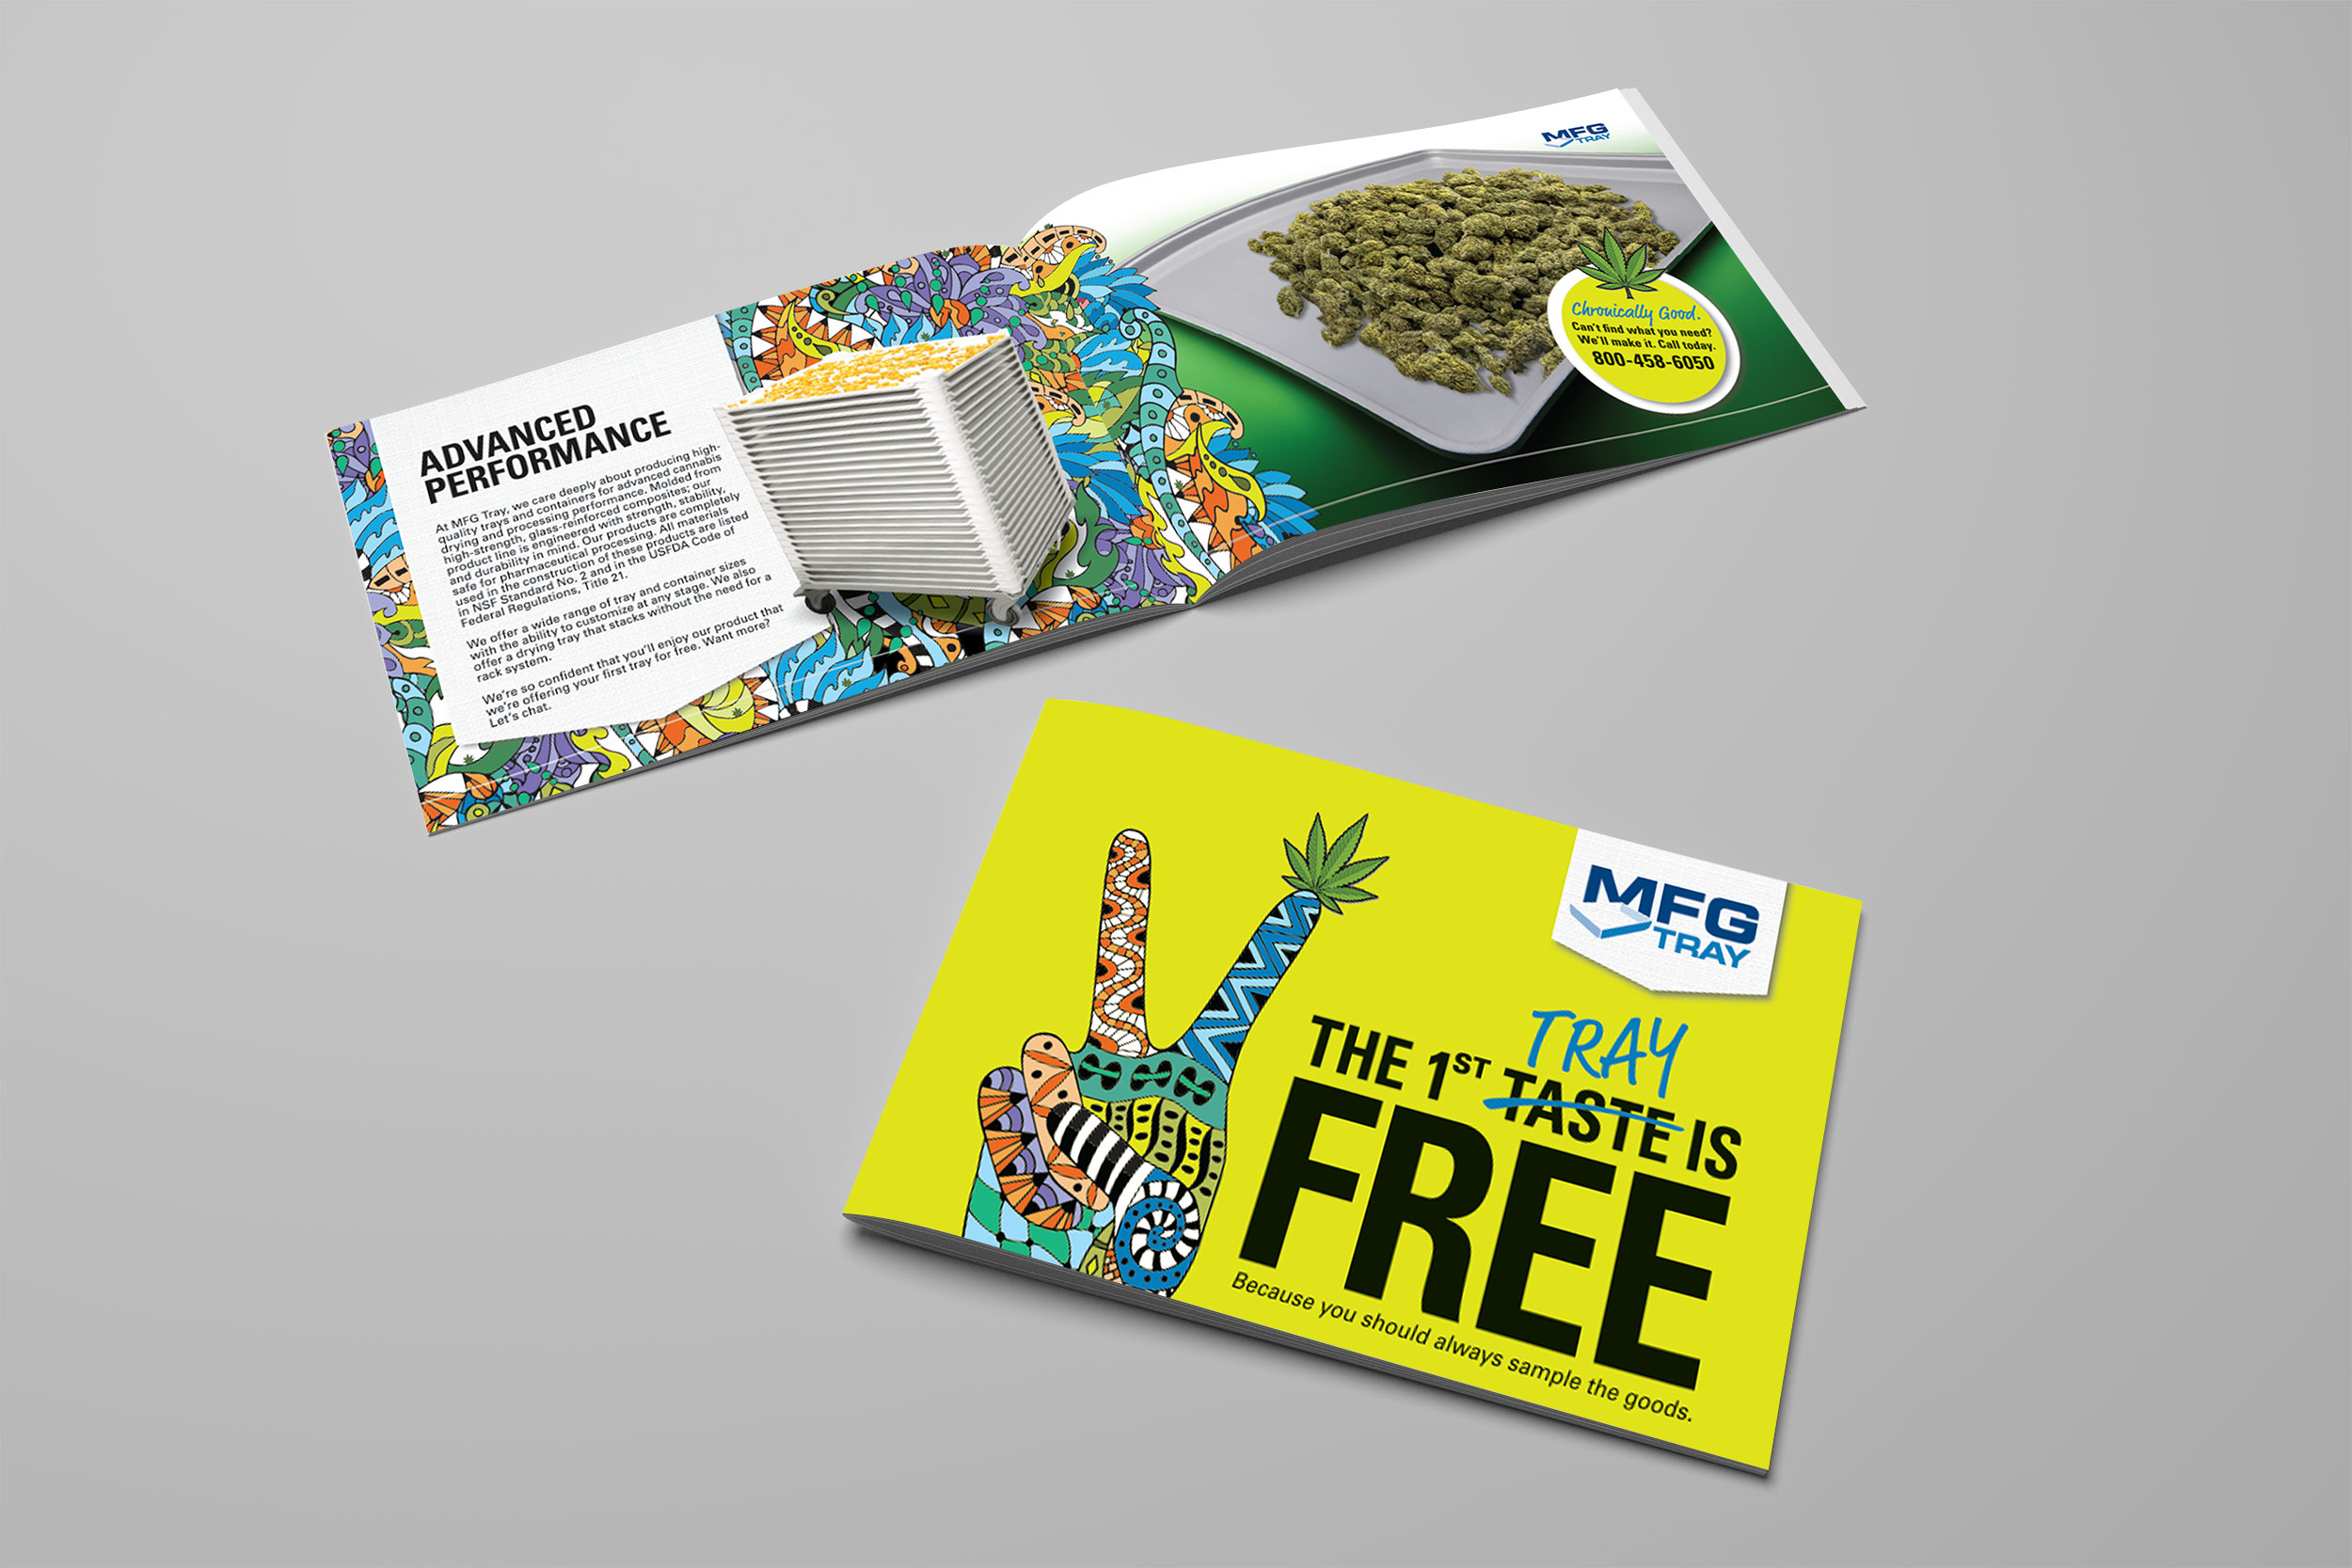 https://papaadvertising.com/wp-content/uploads/2019/08/MFG-Tray-Cannabis-Marketing-Campaign.jpg